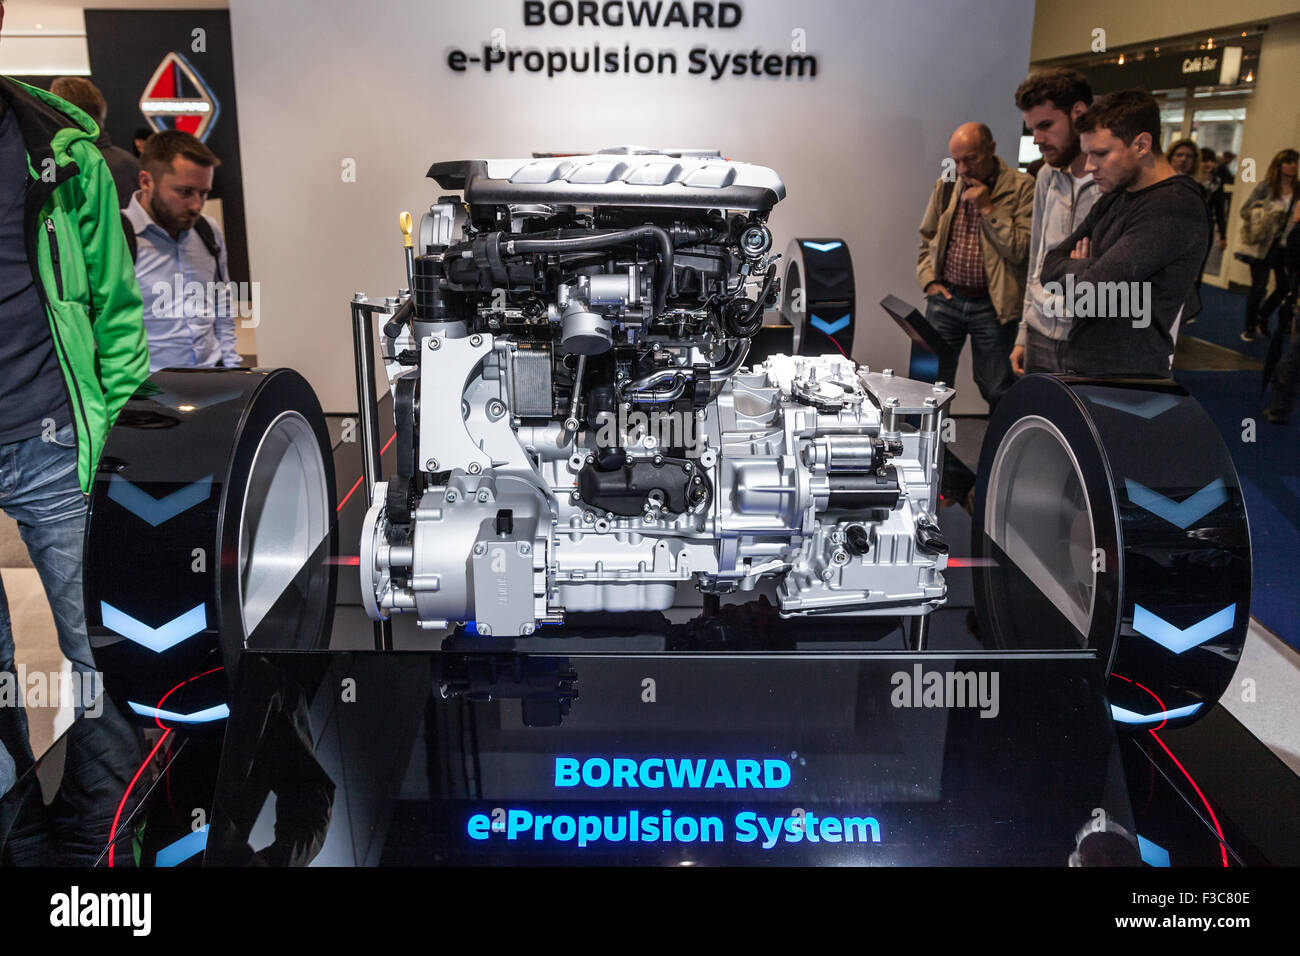 Borgward e-Propulsion Hybrid Transmission at the IAA International Motor Show 2015 - Stock Image